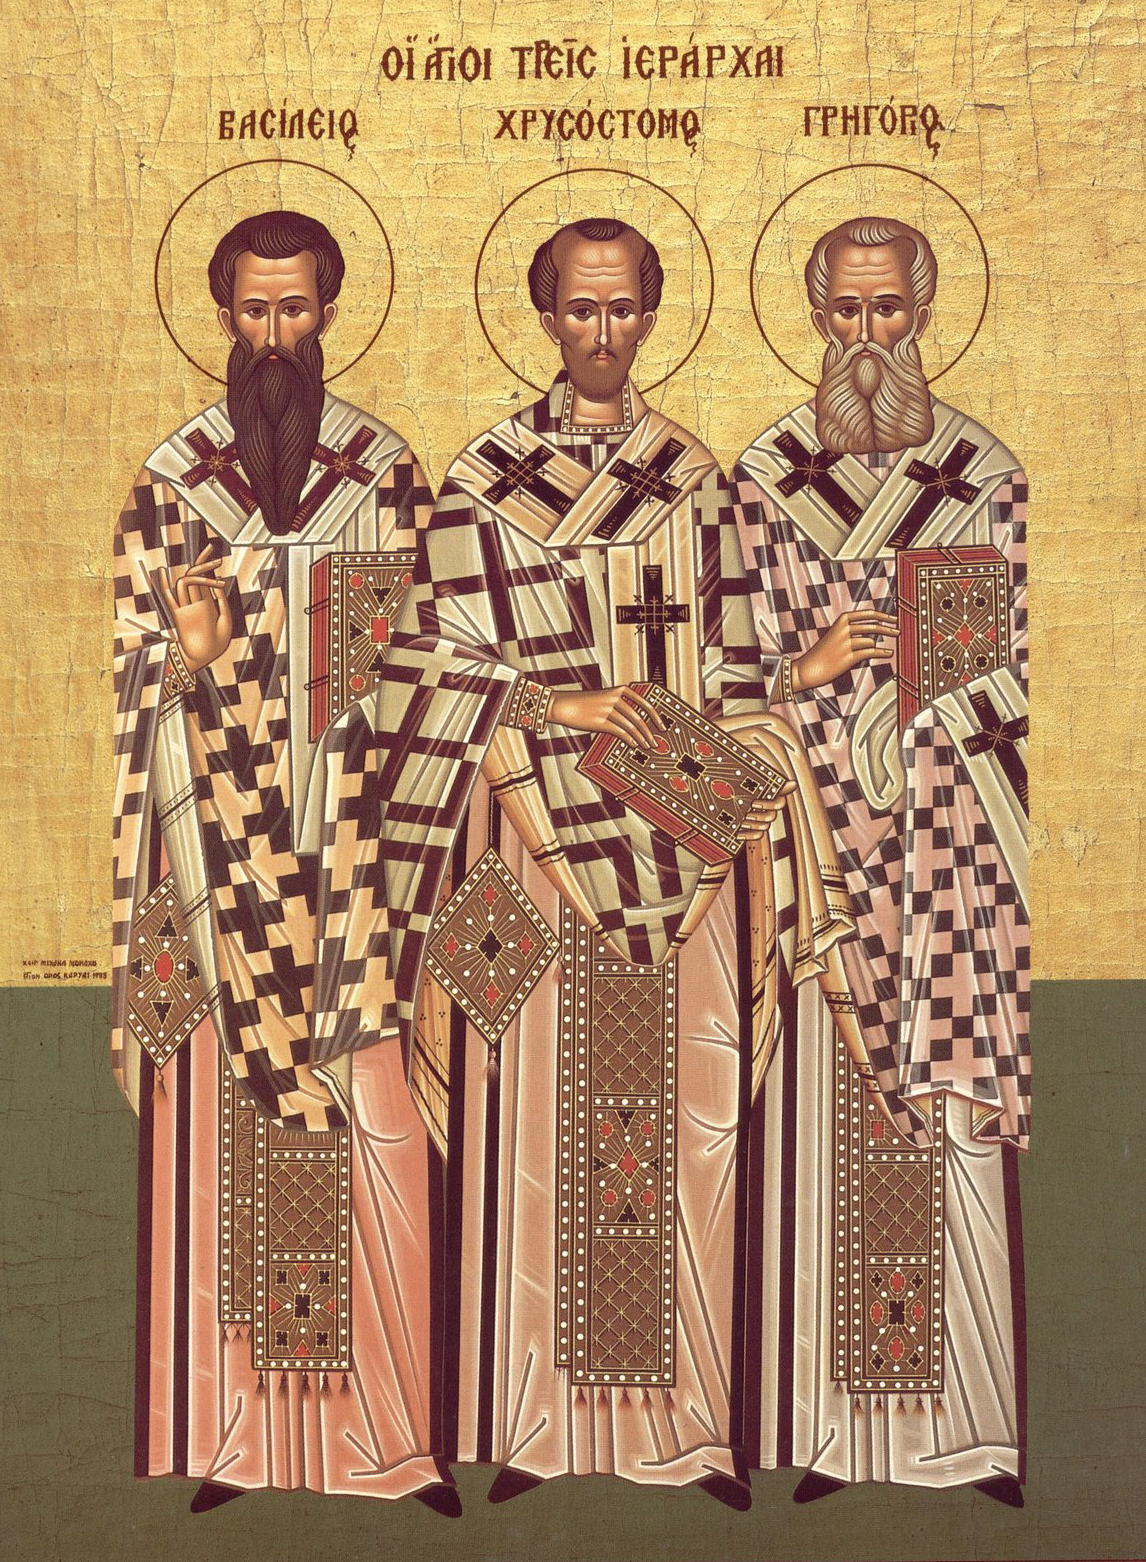 Saint John Chrysostom (center) in the midst of Saints Basil the Great and Gregory the Theologian.